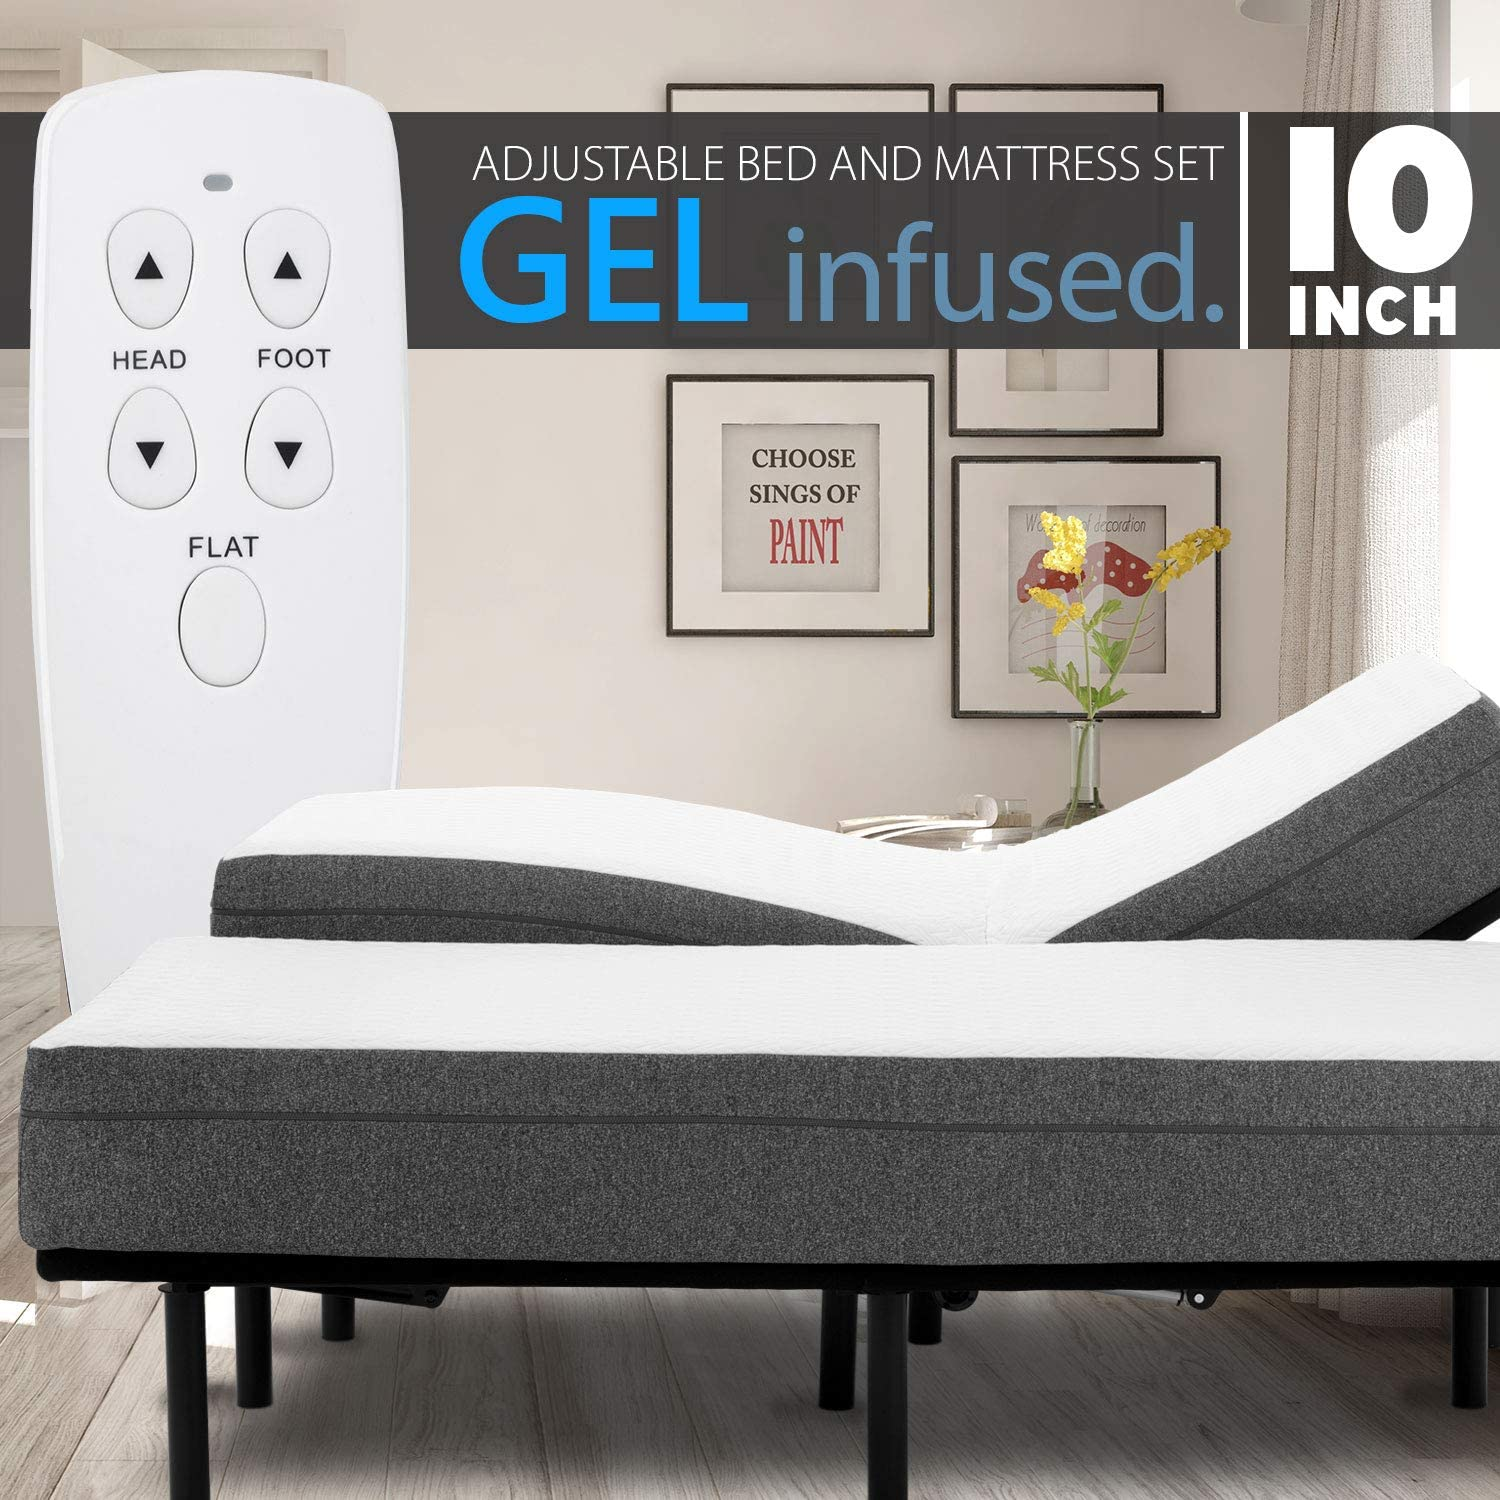 10 Gel Infused Medium Firm Memory Foam Mattress with Adjustable Bed Frame Combo Set Head and Foot Incline Wired Remote Split King